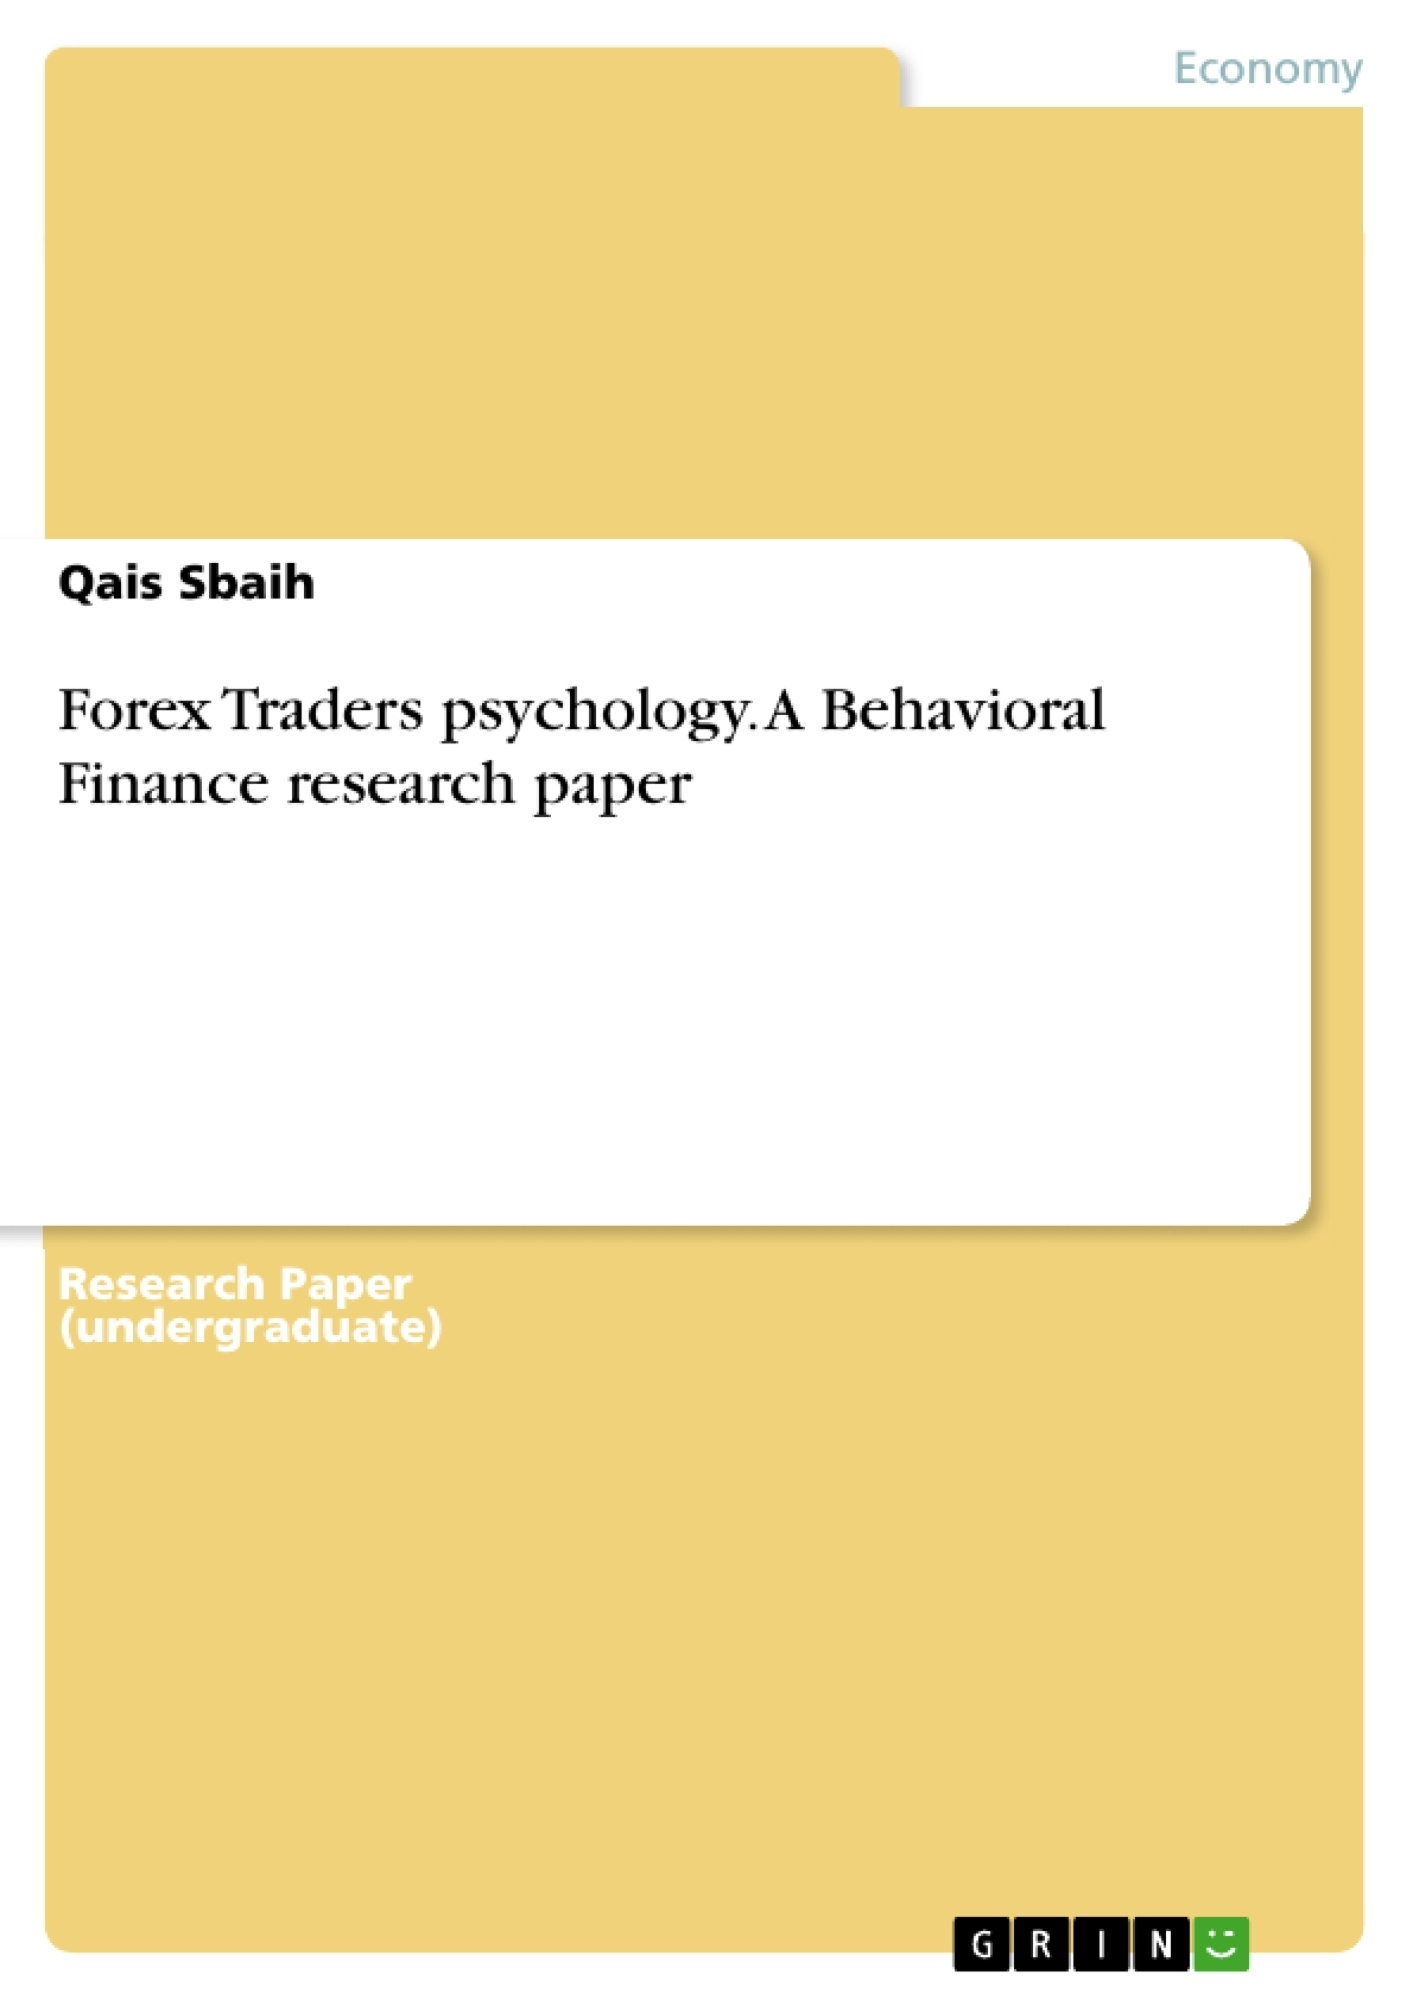 Help on research papers in finance